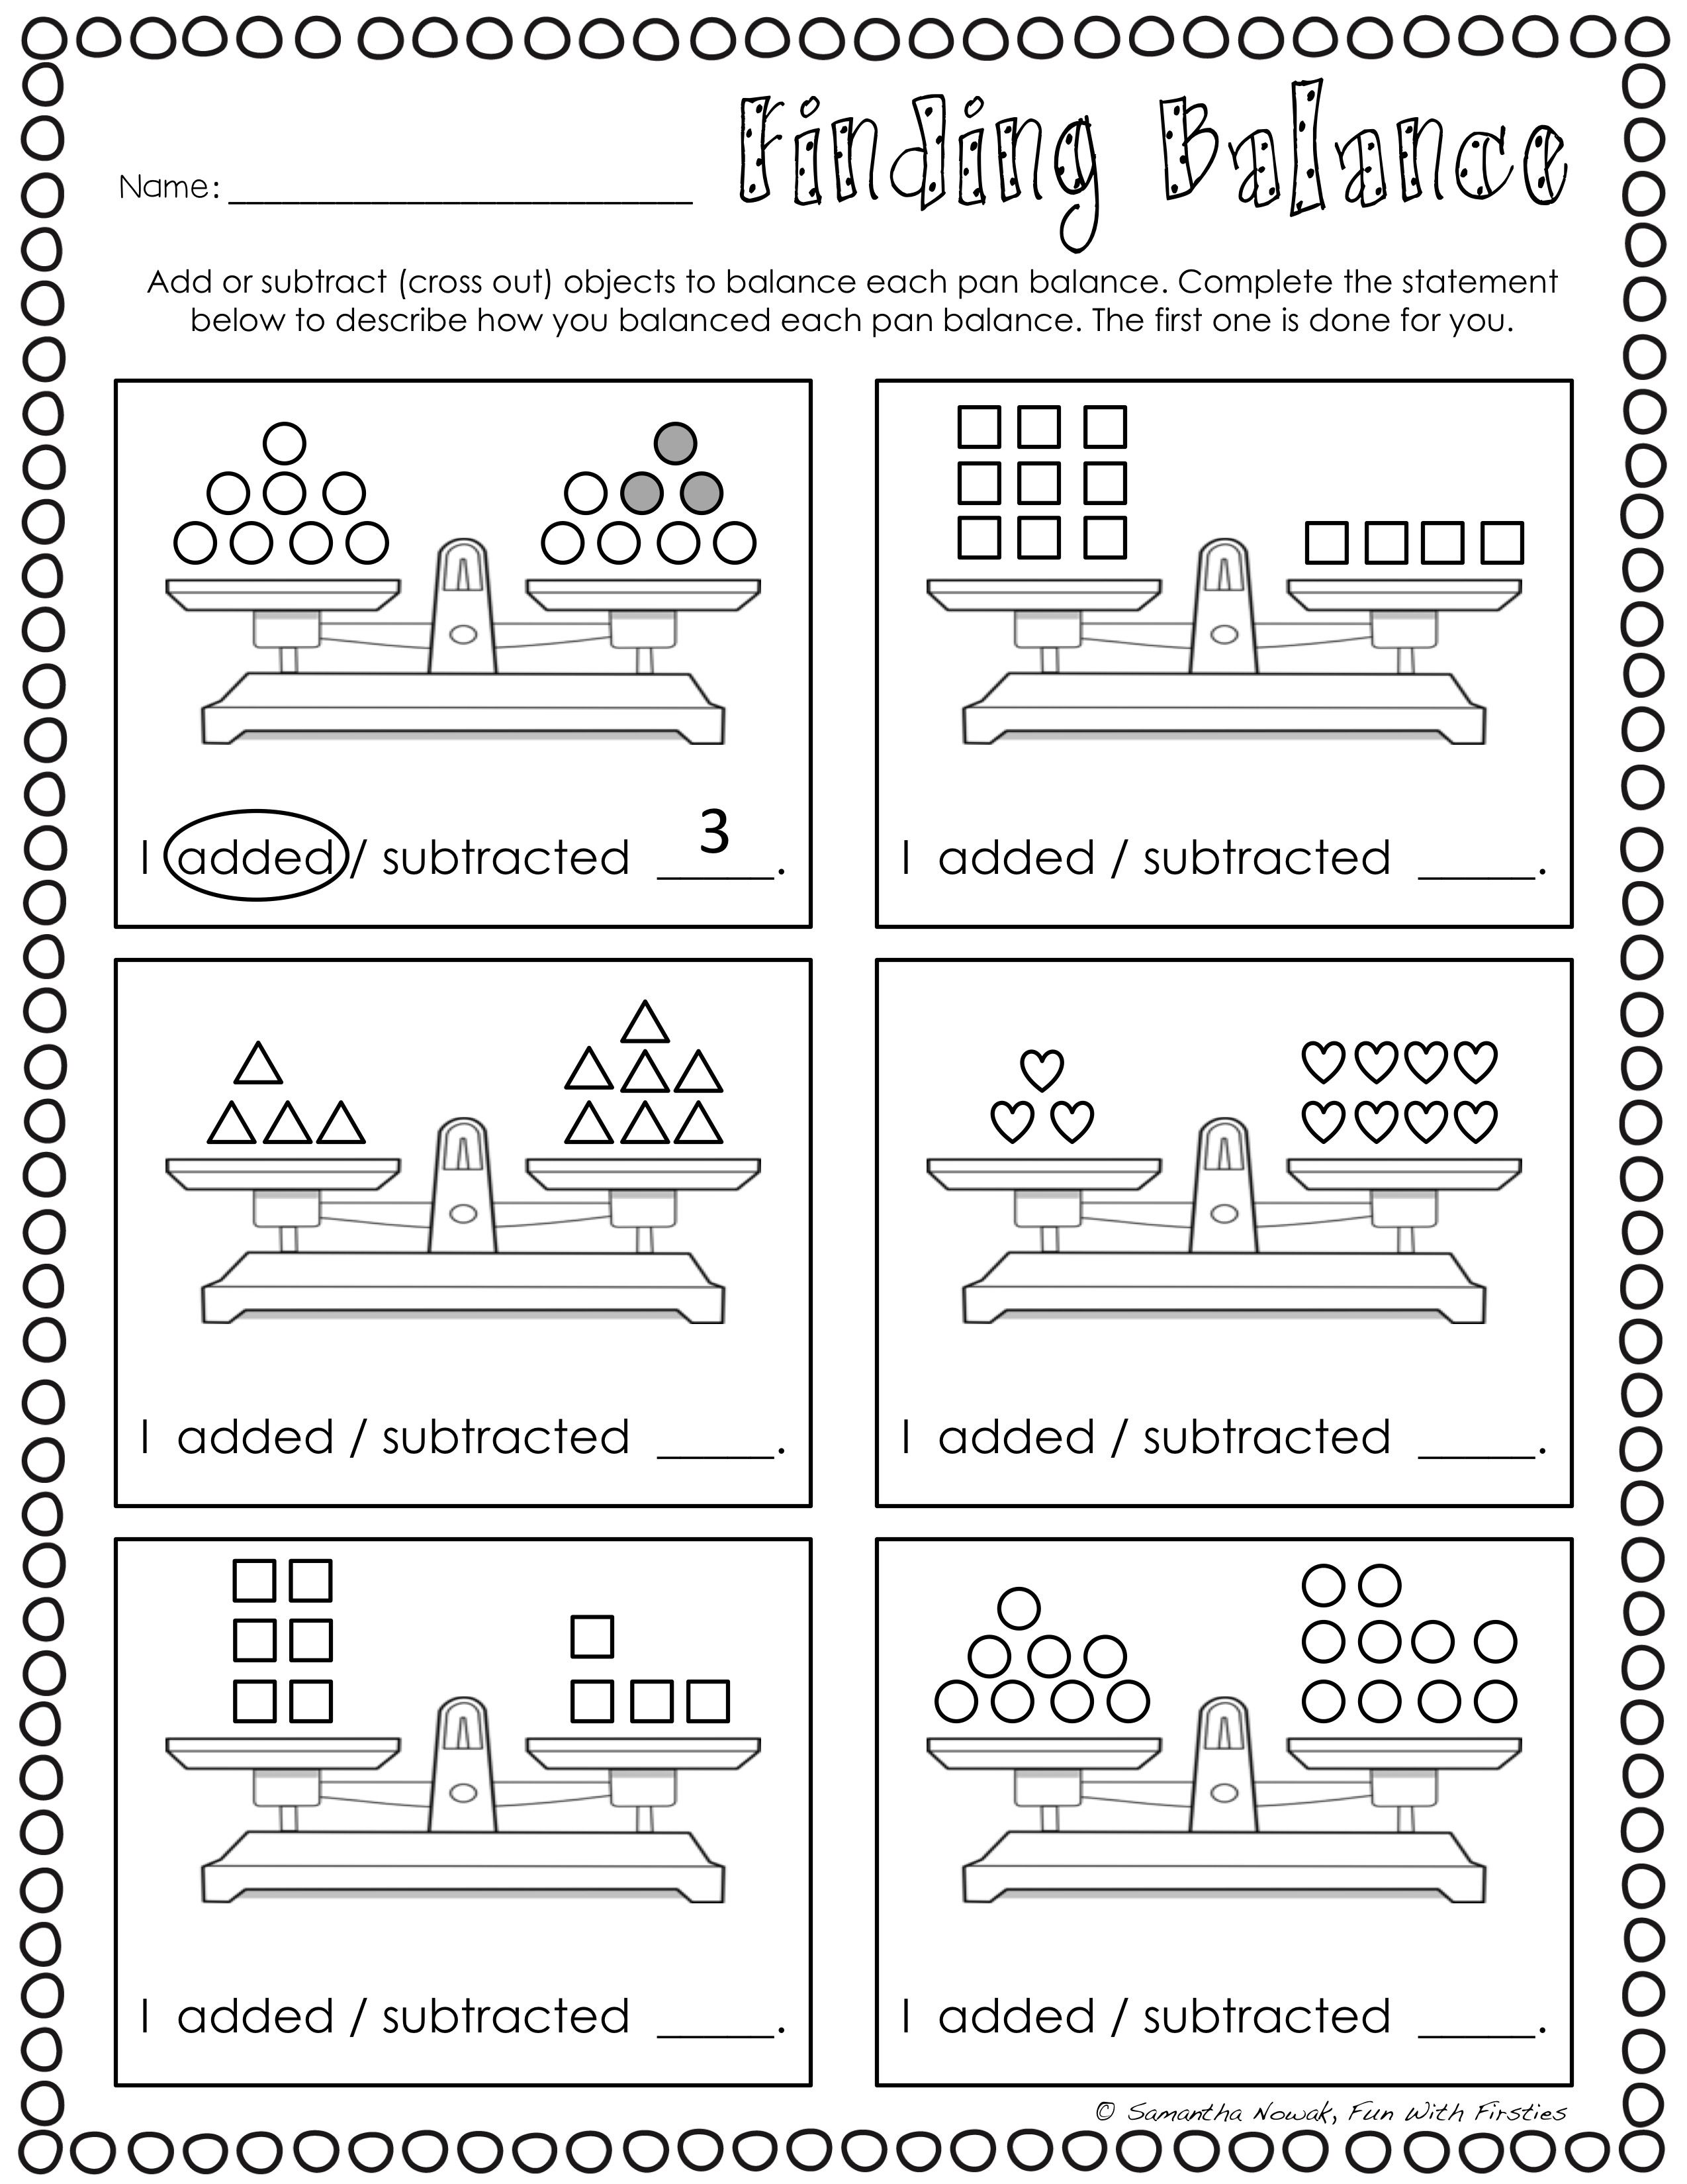 medium resolution of Balancing Equations: Print \u0026 Go! worksheets for extra practice and/or  assessment   Balancing equations